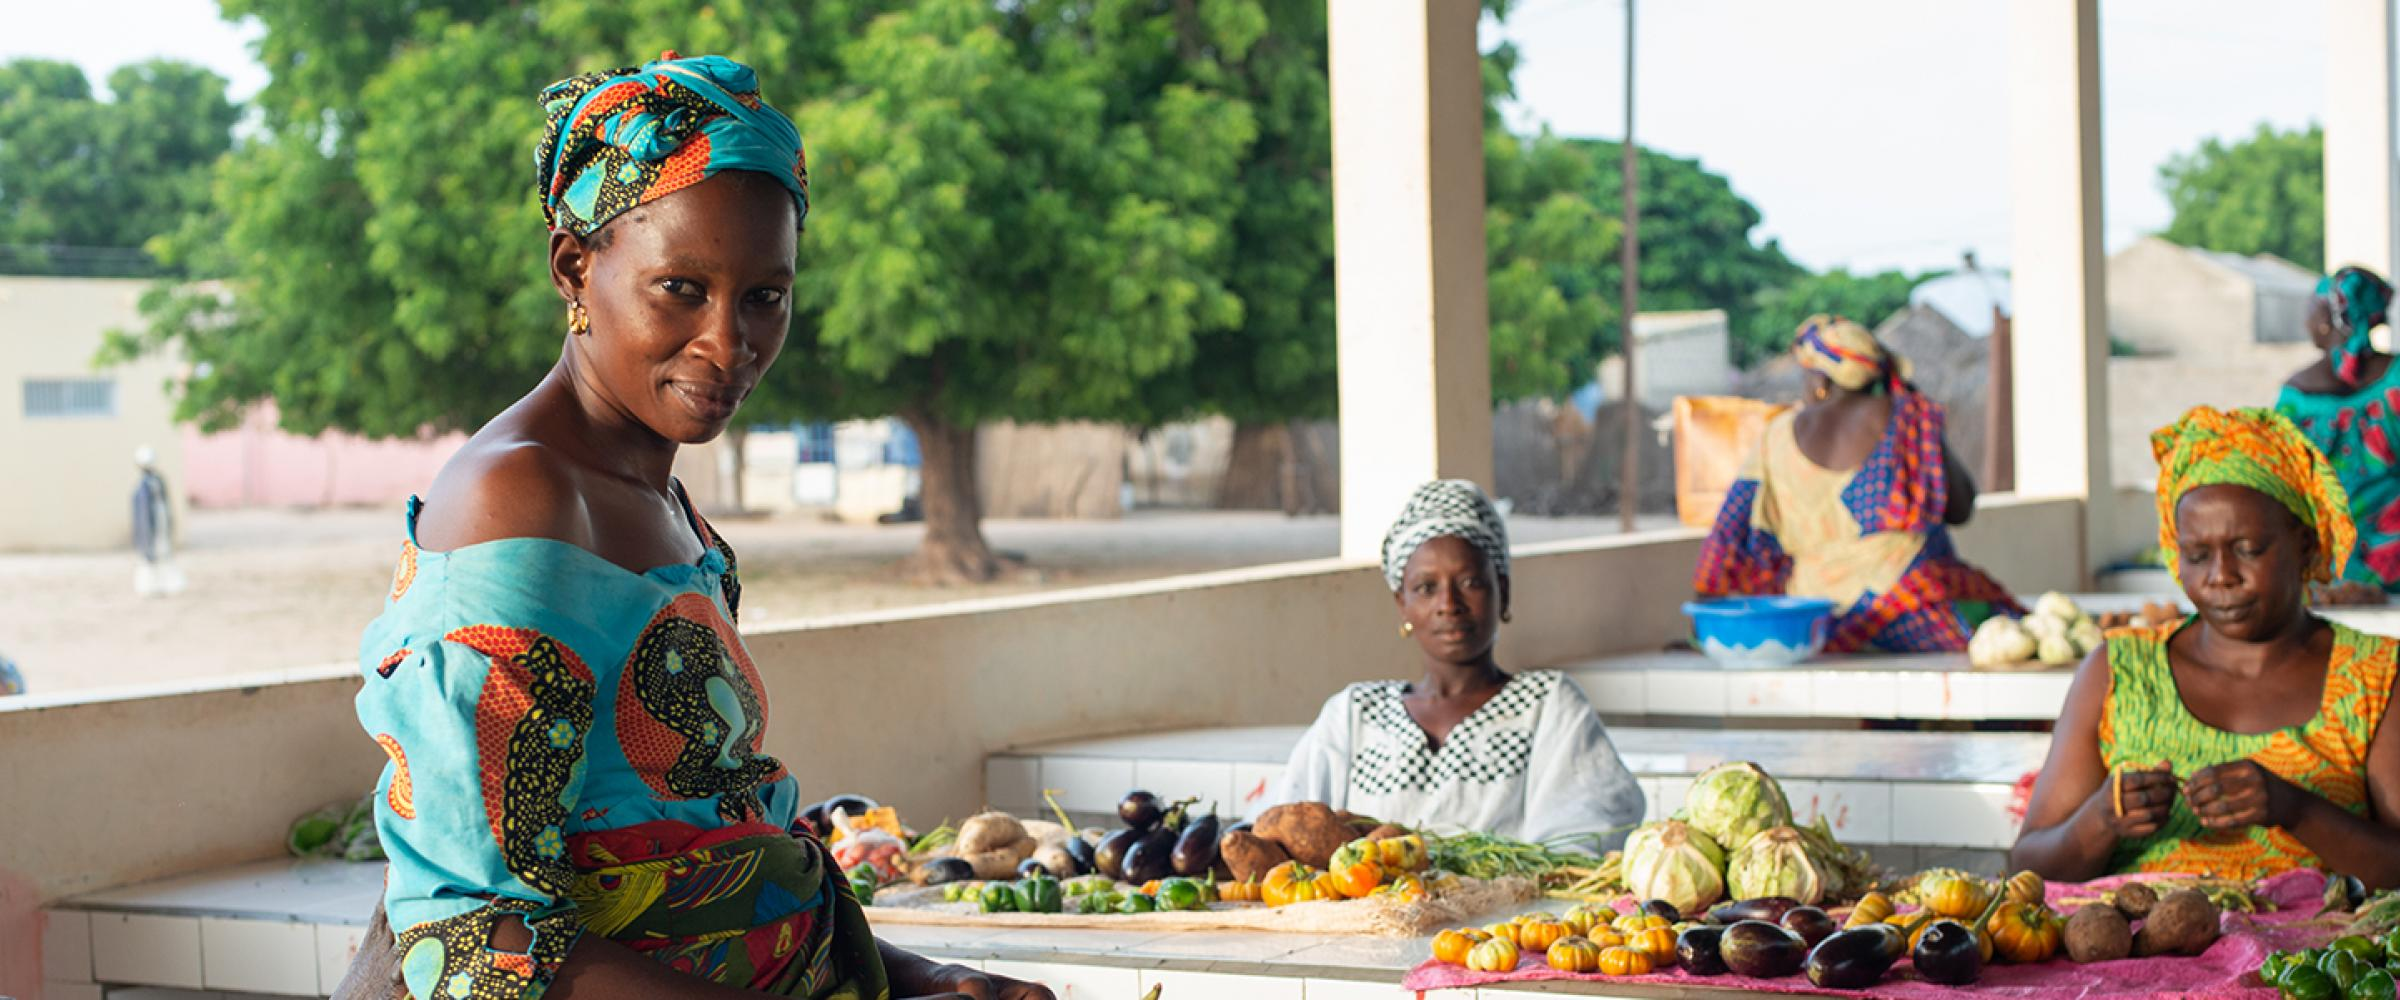 The Lekela project is helping to empower women in Taiba N'diaye, Senegal.  (From left to right) Mme. Wade, Mme. Ndiaye, and Mme. Mame Seye Gueye are proud to sell their vegetables at the market stalls.